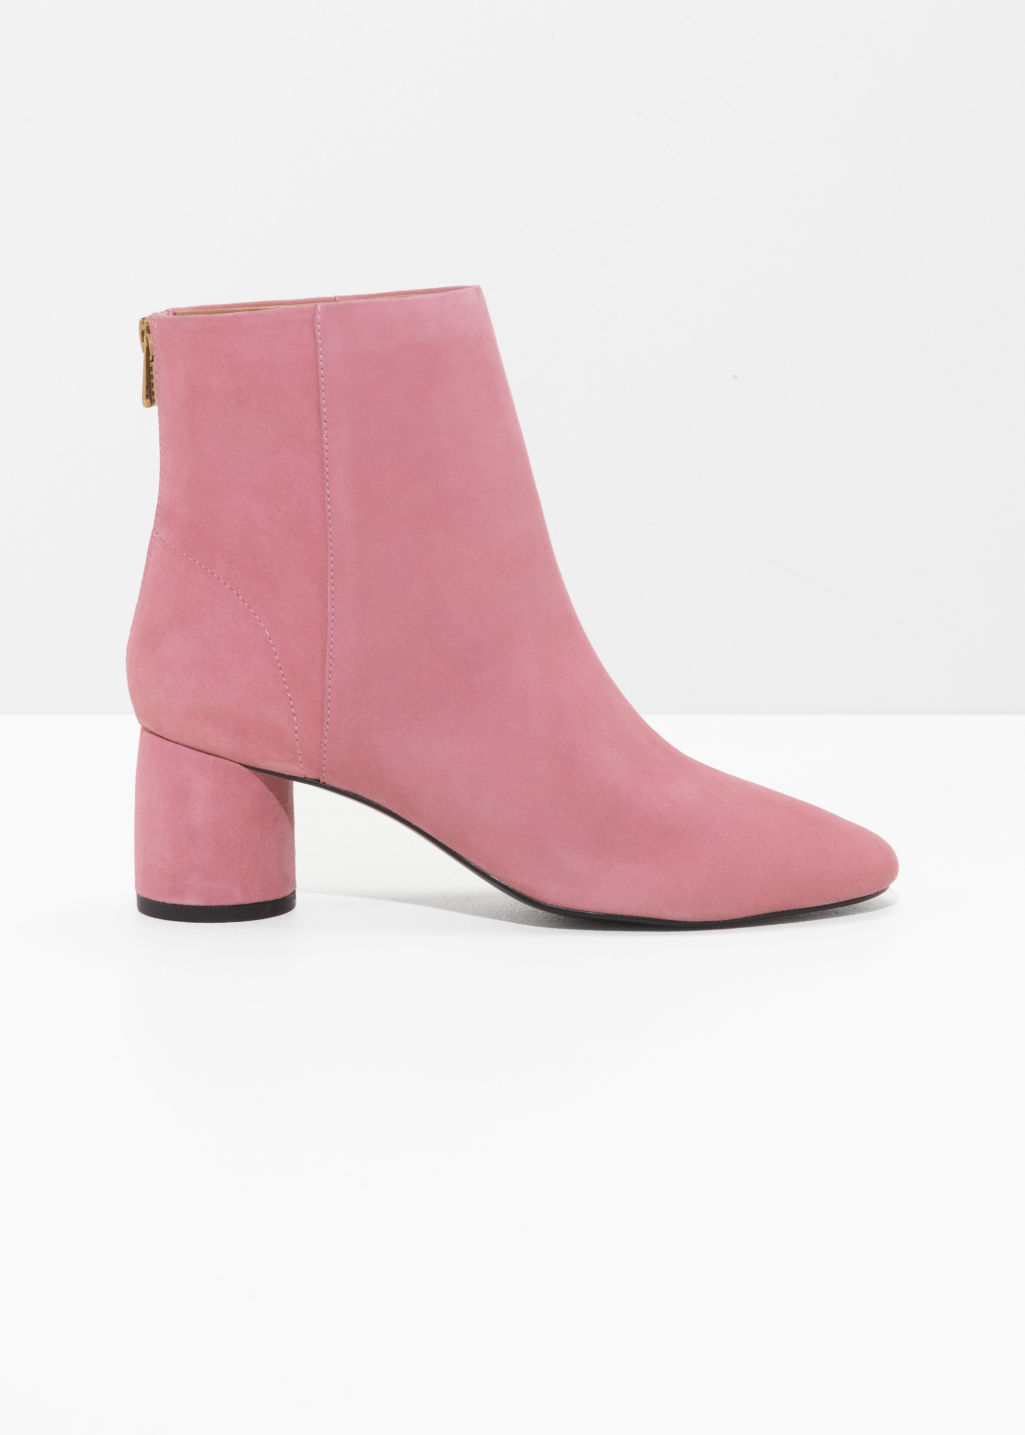 & OTHER STORIES Cylinder Heel Boots